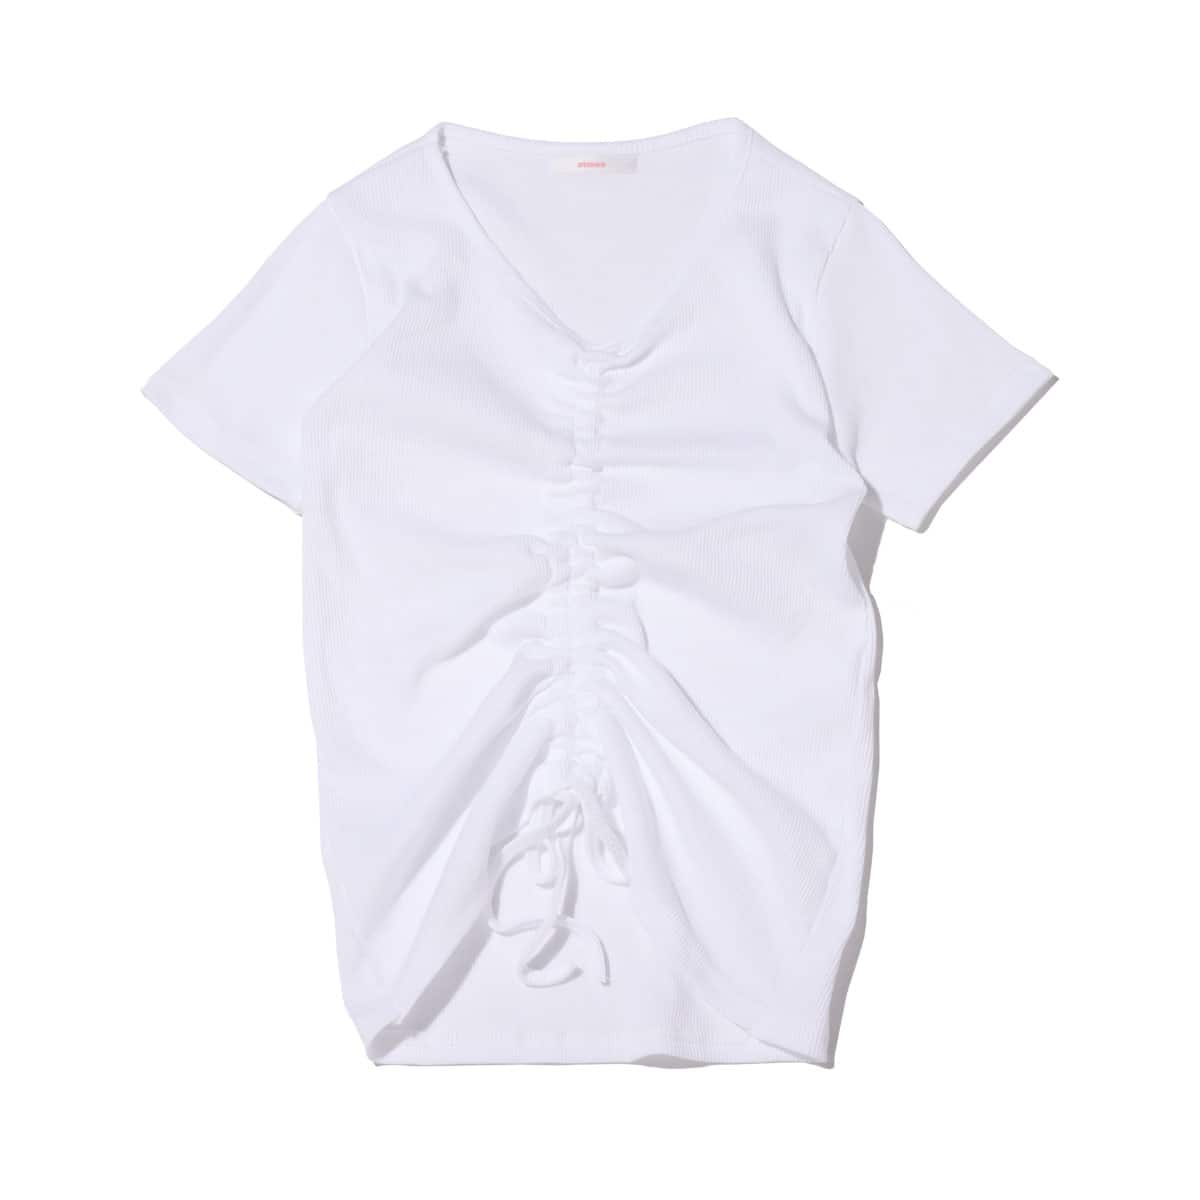 atmos pink 前絞り リブ Tシャツ WHITE 21SP-I_photo_large